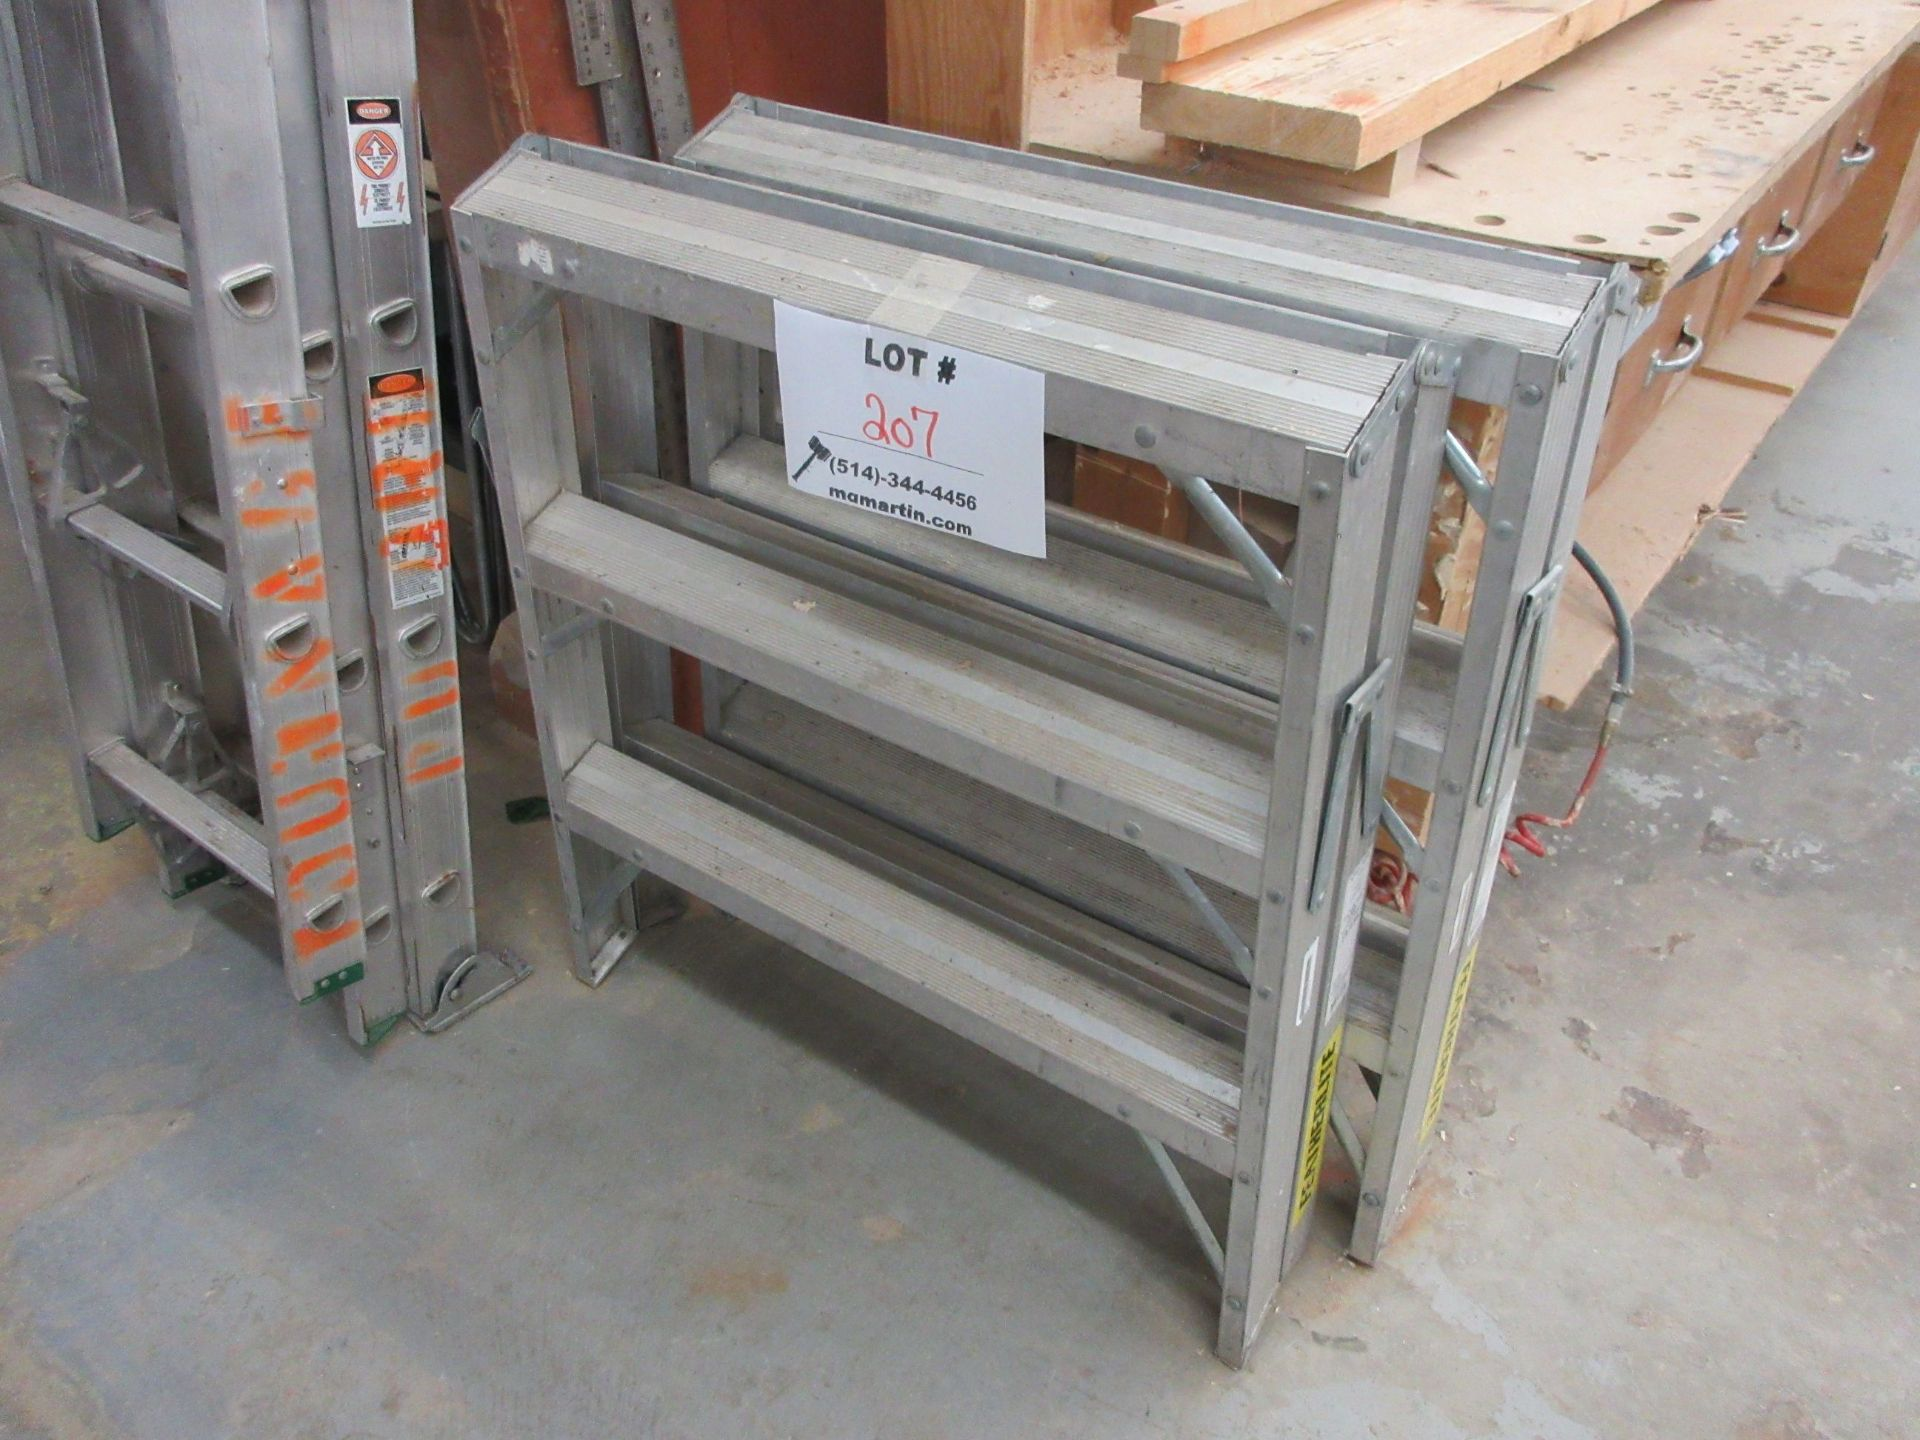 Lot 207 - Heavy dury step ladders (2)